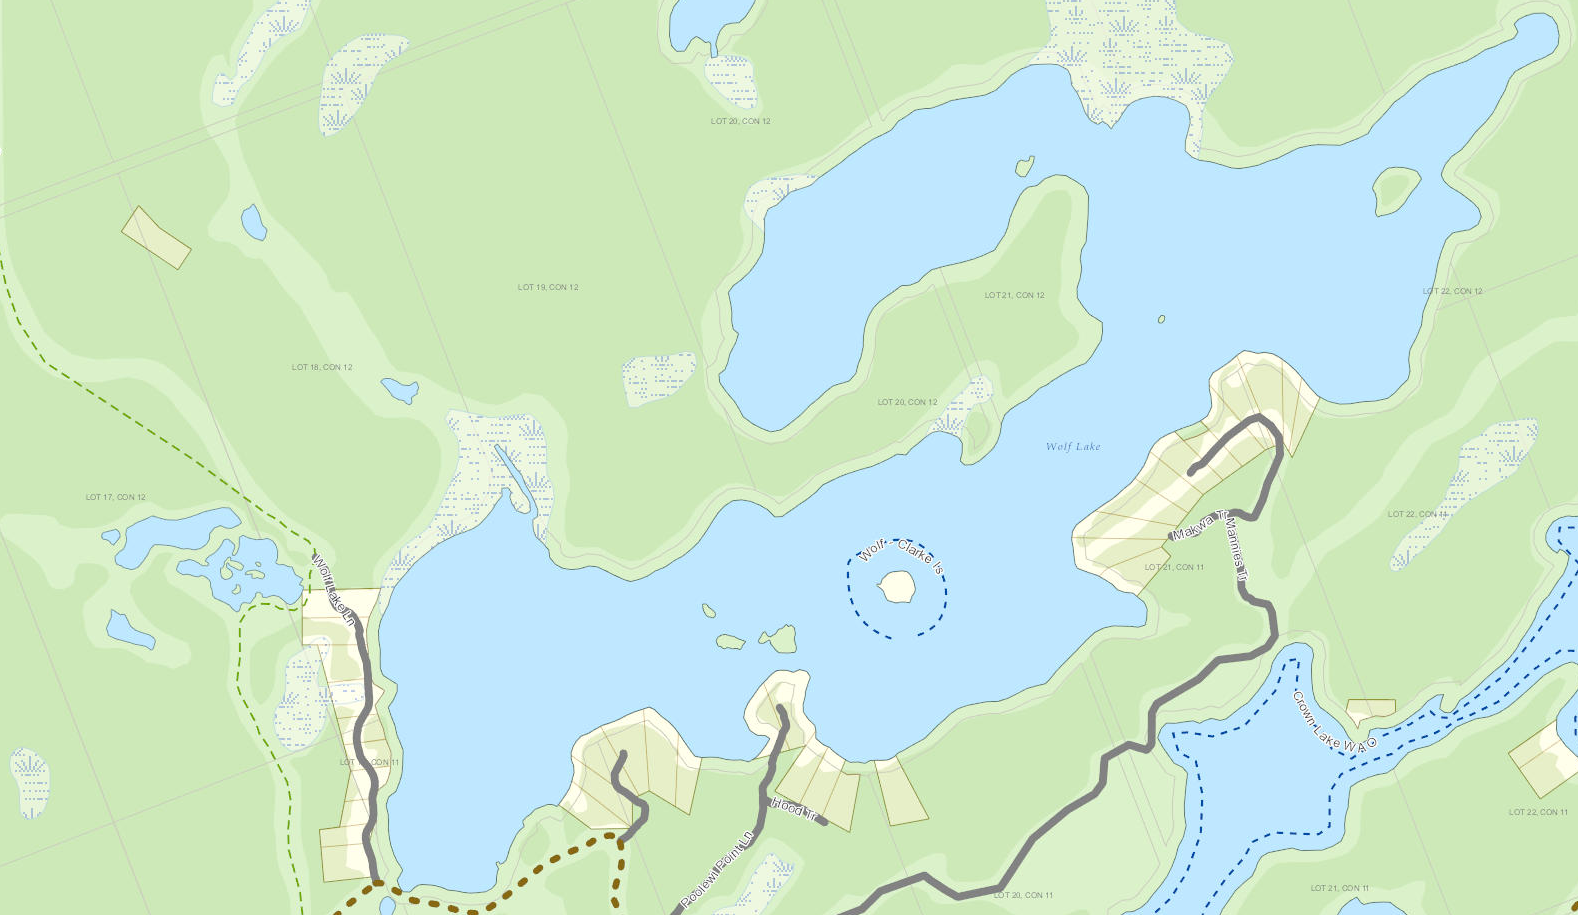 Bear Lake Cadastral Map - Bear Lake - Muskoka